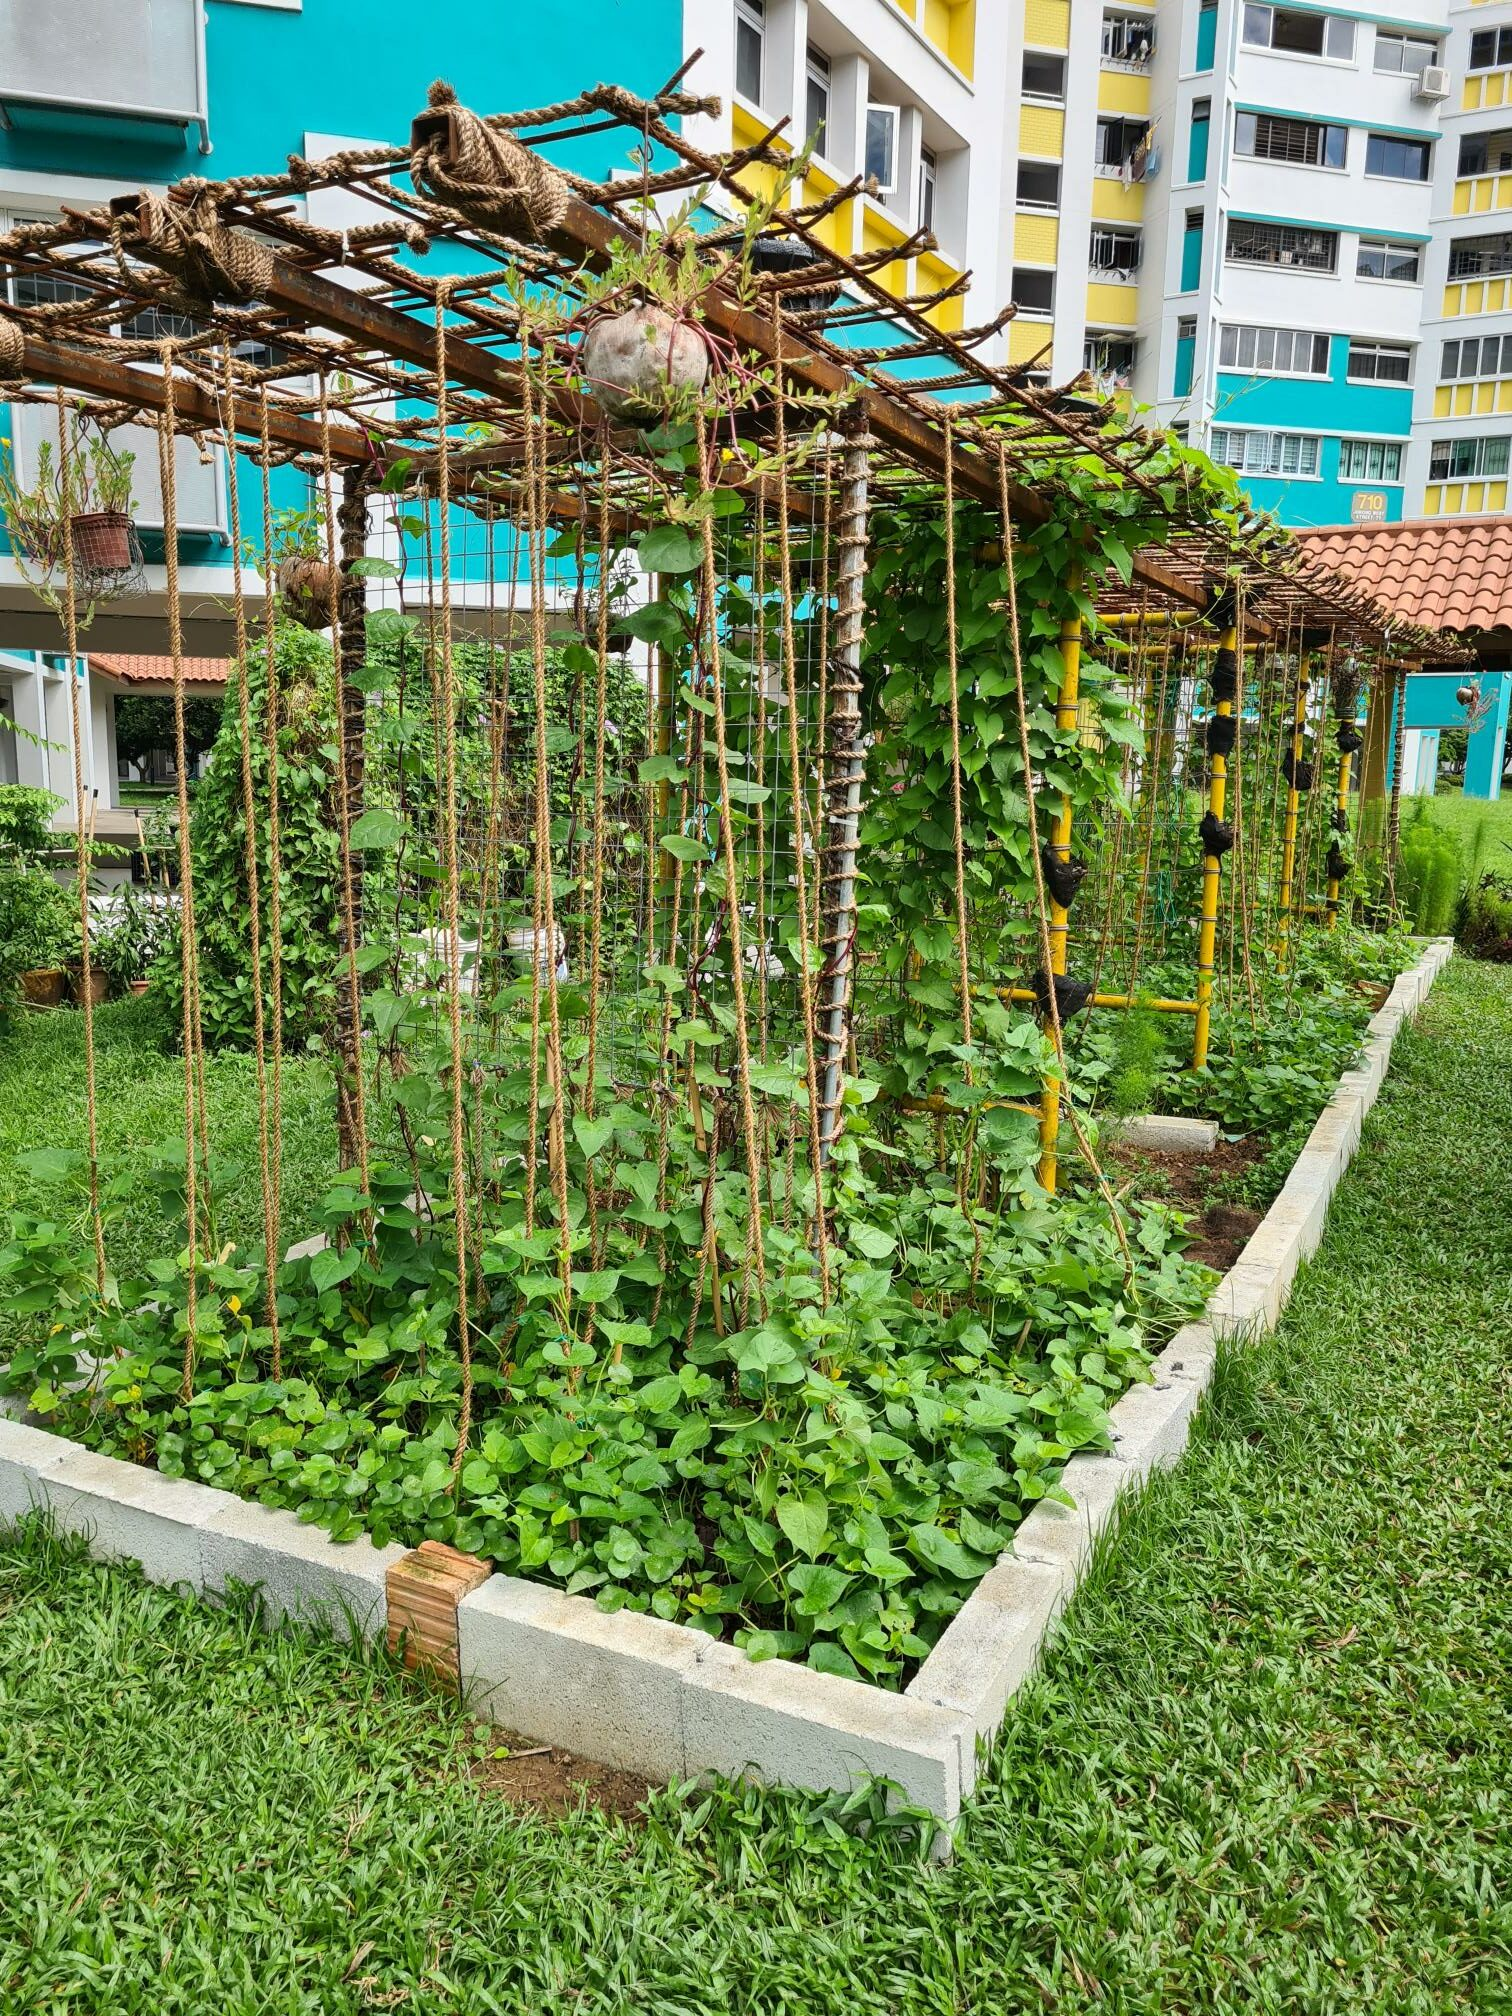 garden beds with a trellis and many vines